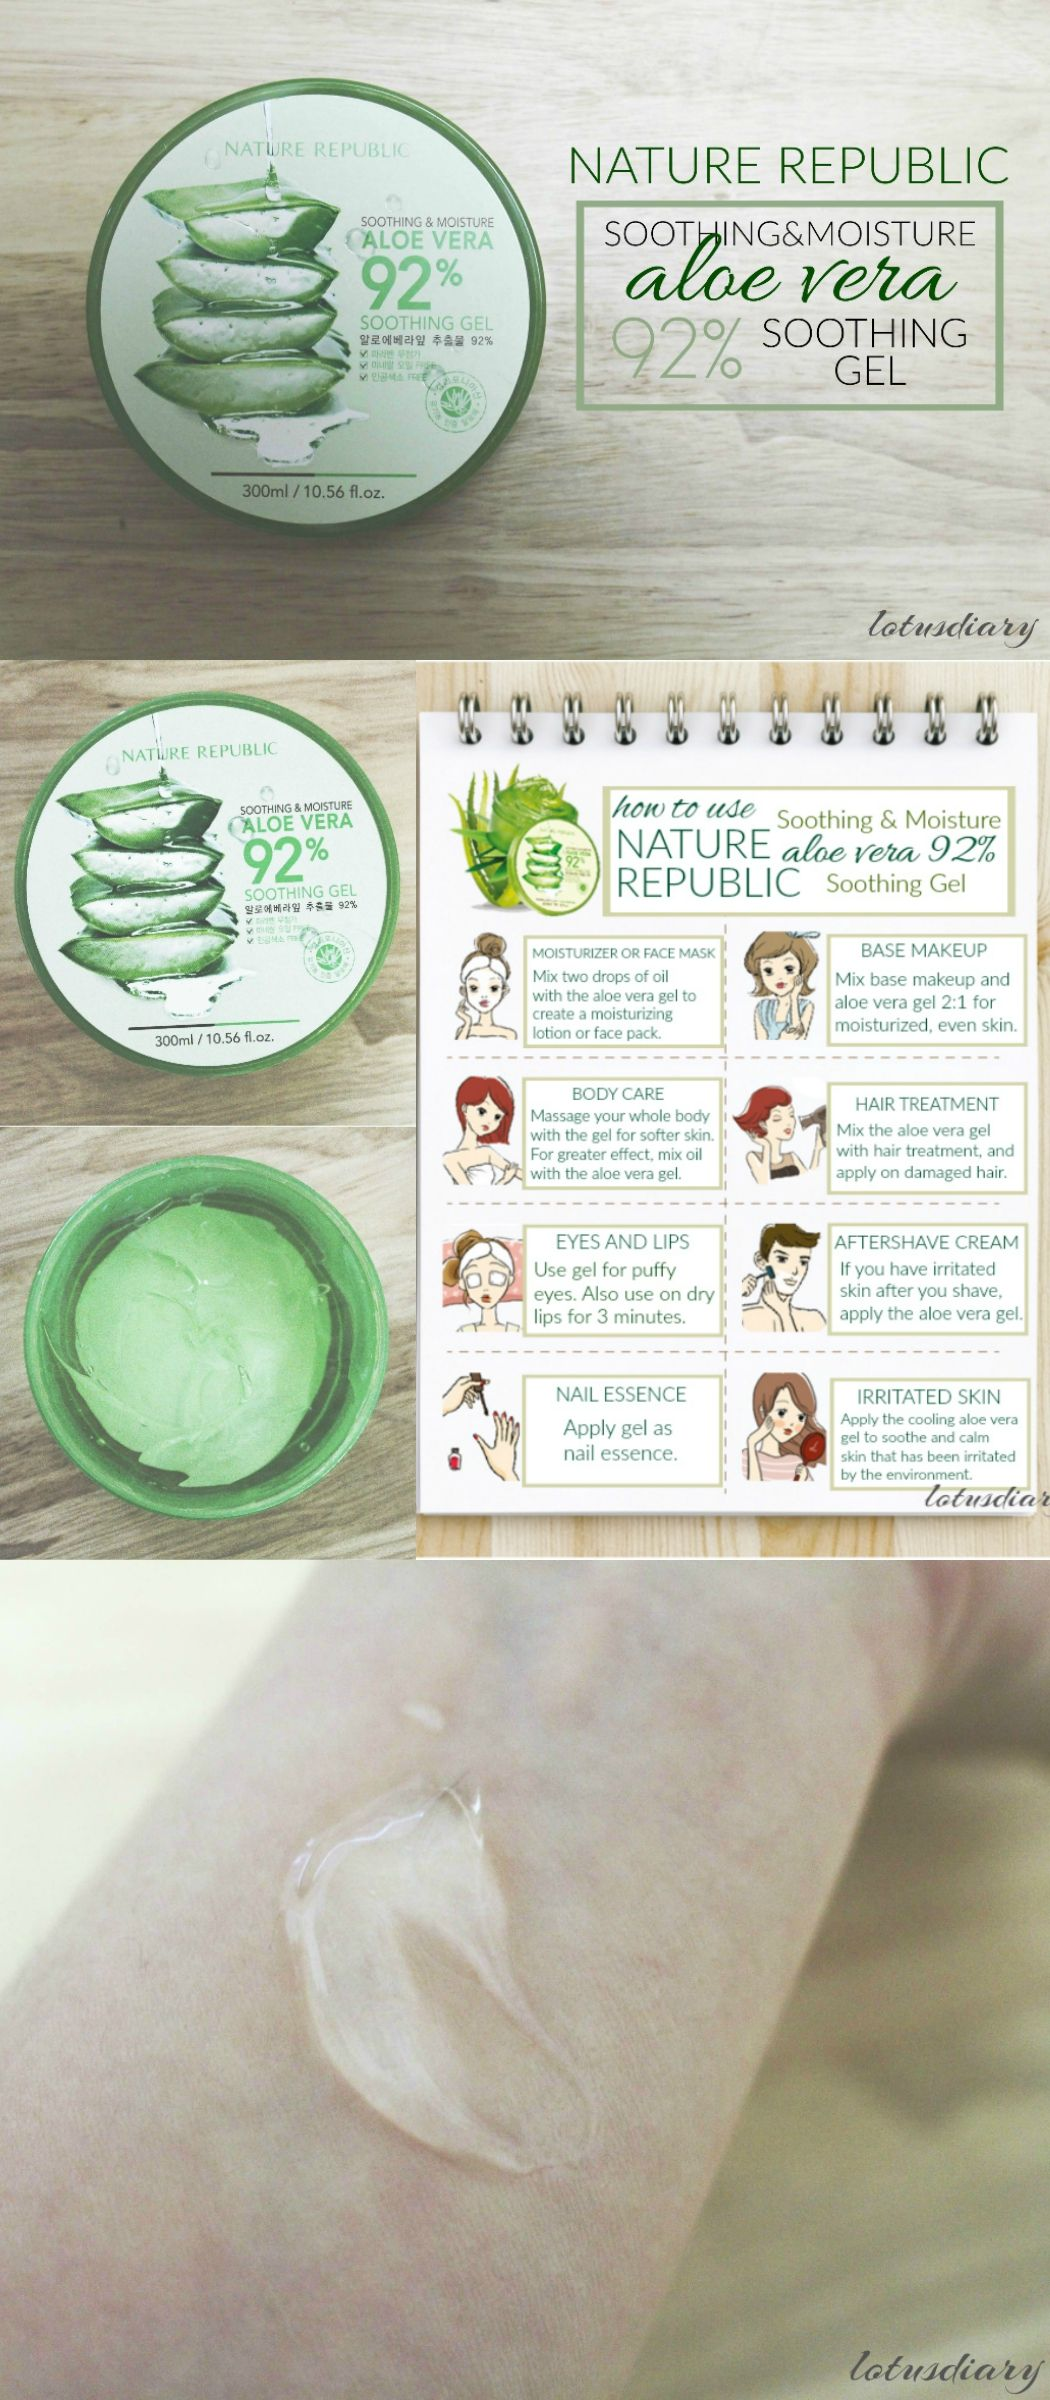 Nature republic soothing and moisture aloe vera 92 soothing gel 300ml - Aloe Review Nature Republic Soothing Moisture Aloe Vera 92 Soothing Gel